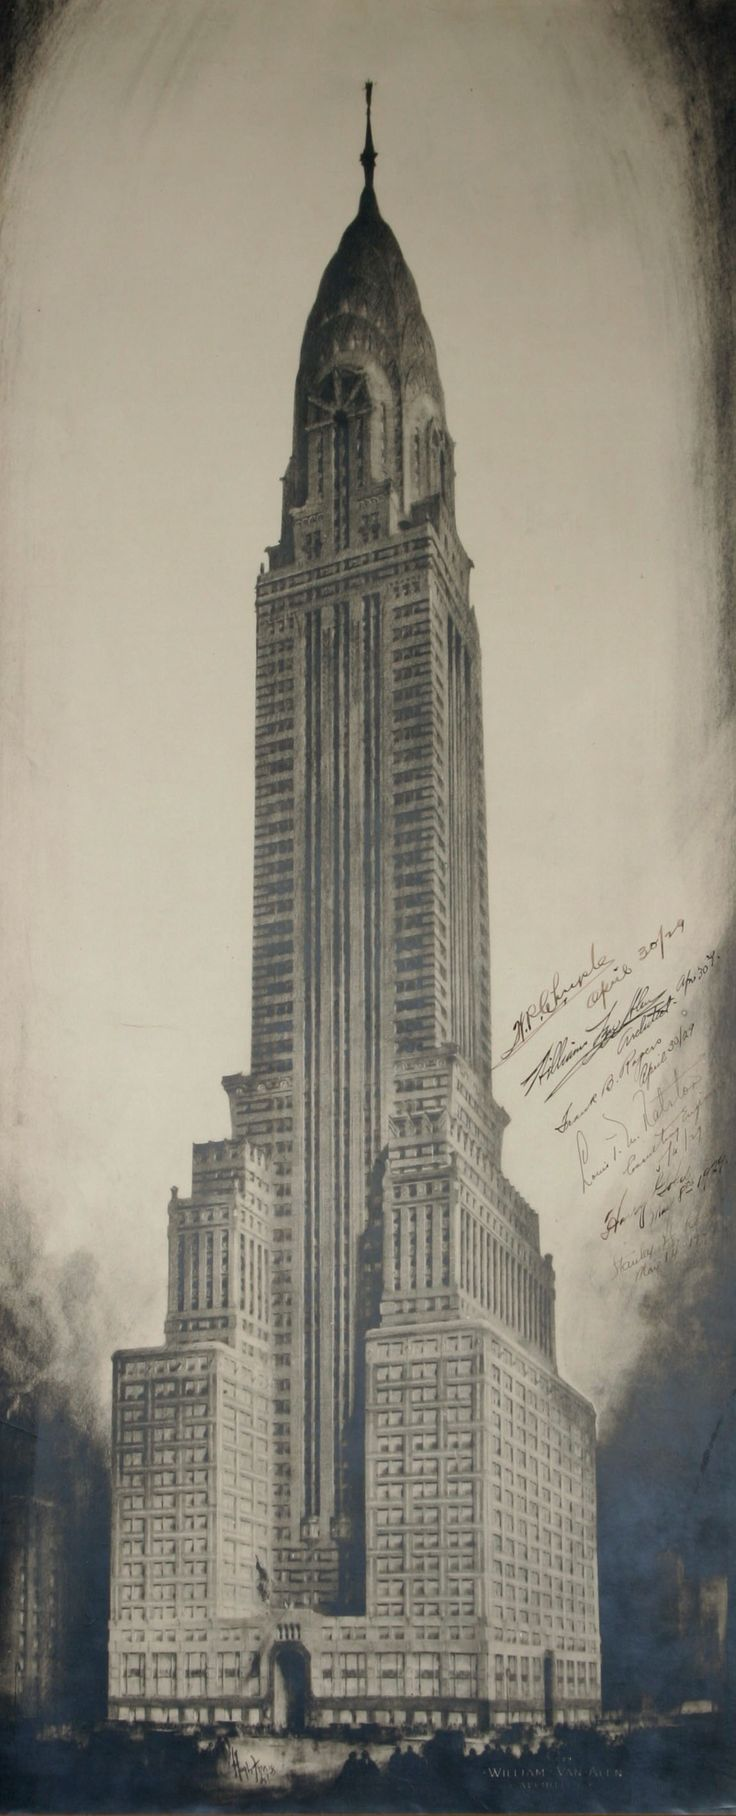 Architectural drawings by the great Hugh Ferriss. His archives are held by Avery Library.: Building Sketch, Avery Libraries, Pinterest Architecture, Architecture Drawings, A Architecture, Hugh Ferriss, Architecture Sketch, Chrysler Building, Art Deco